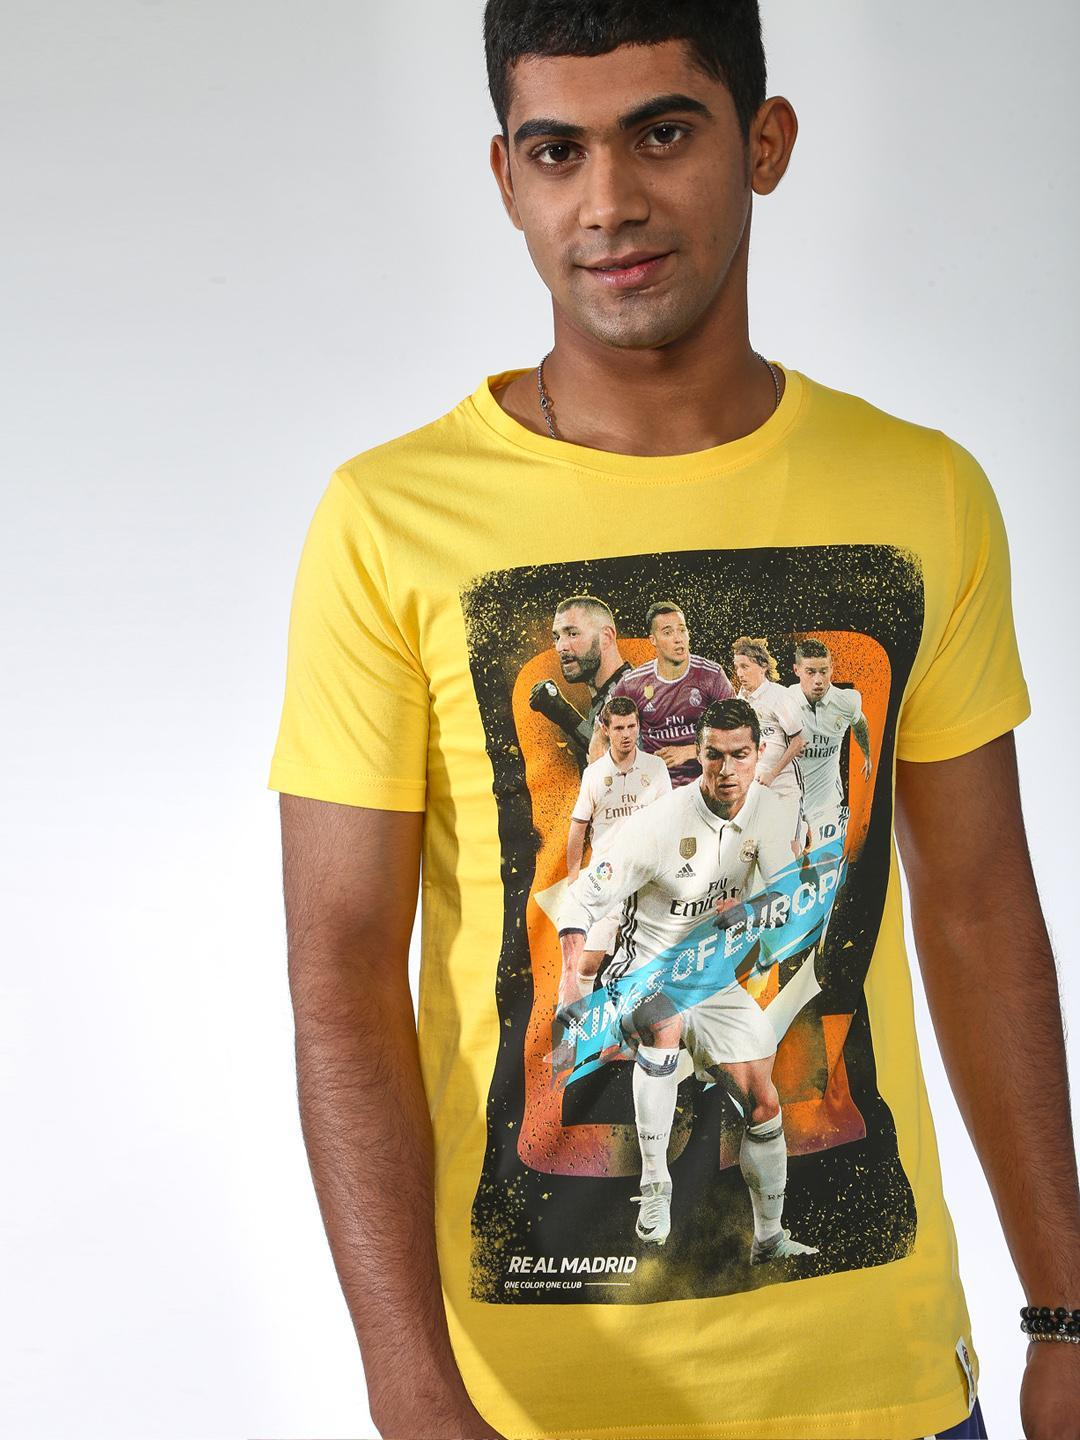 REAL MADRID Yellow Placement Print Short Sleeves T-shirt 1